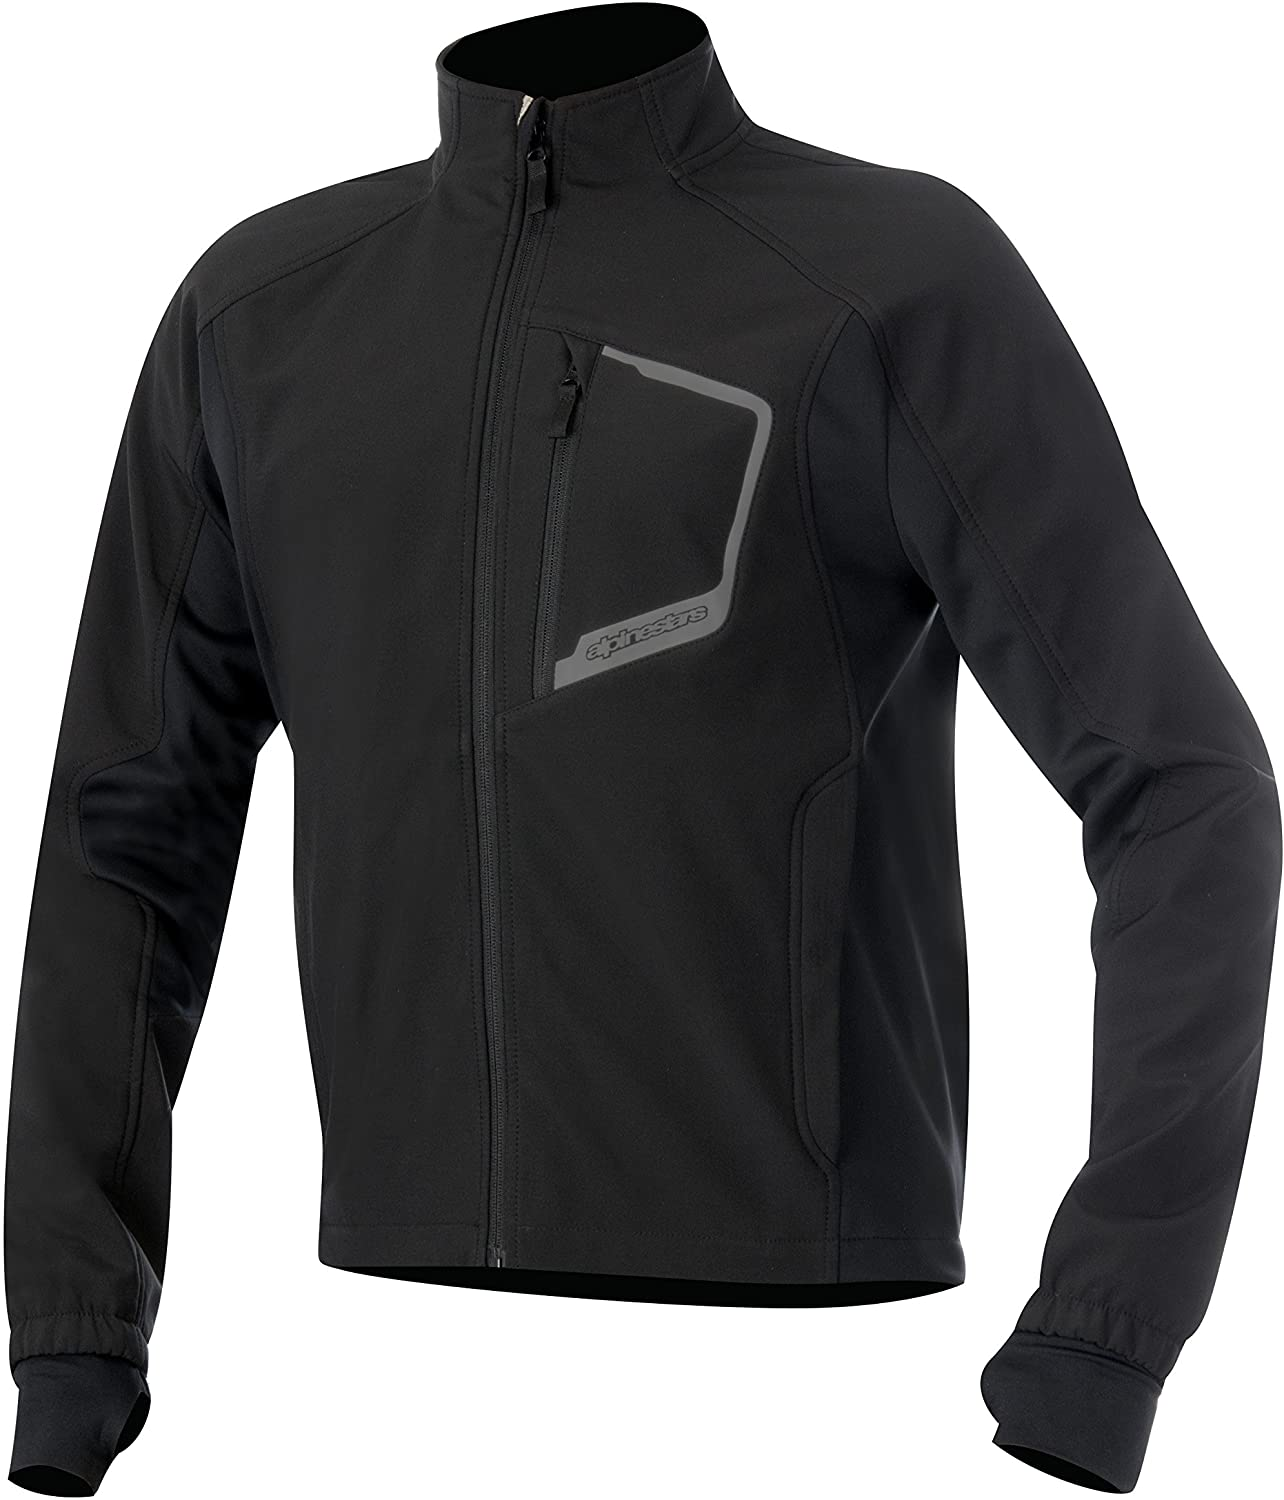 Alpinestars Men's Tech Layer Motorcycle Riding Top, Black, 3X-Large